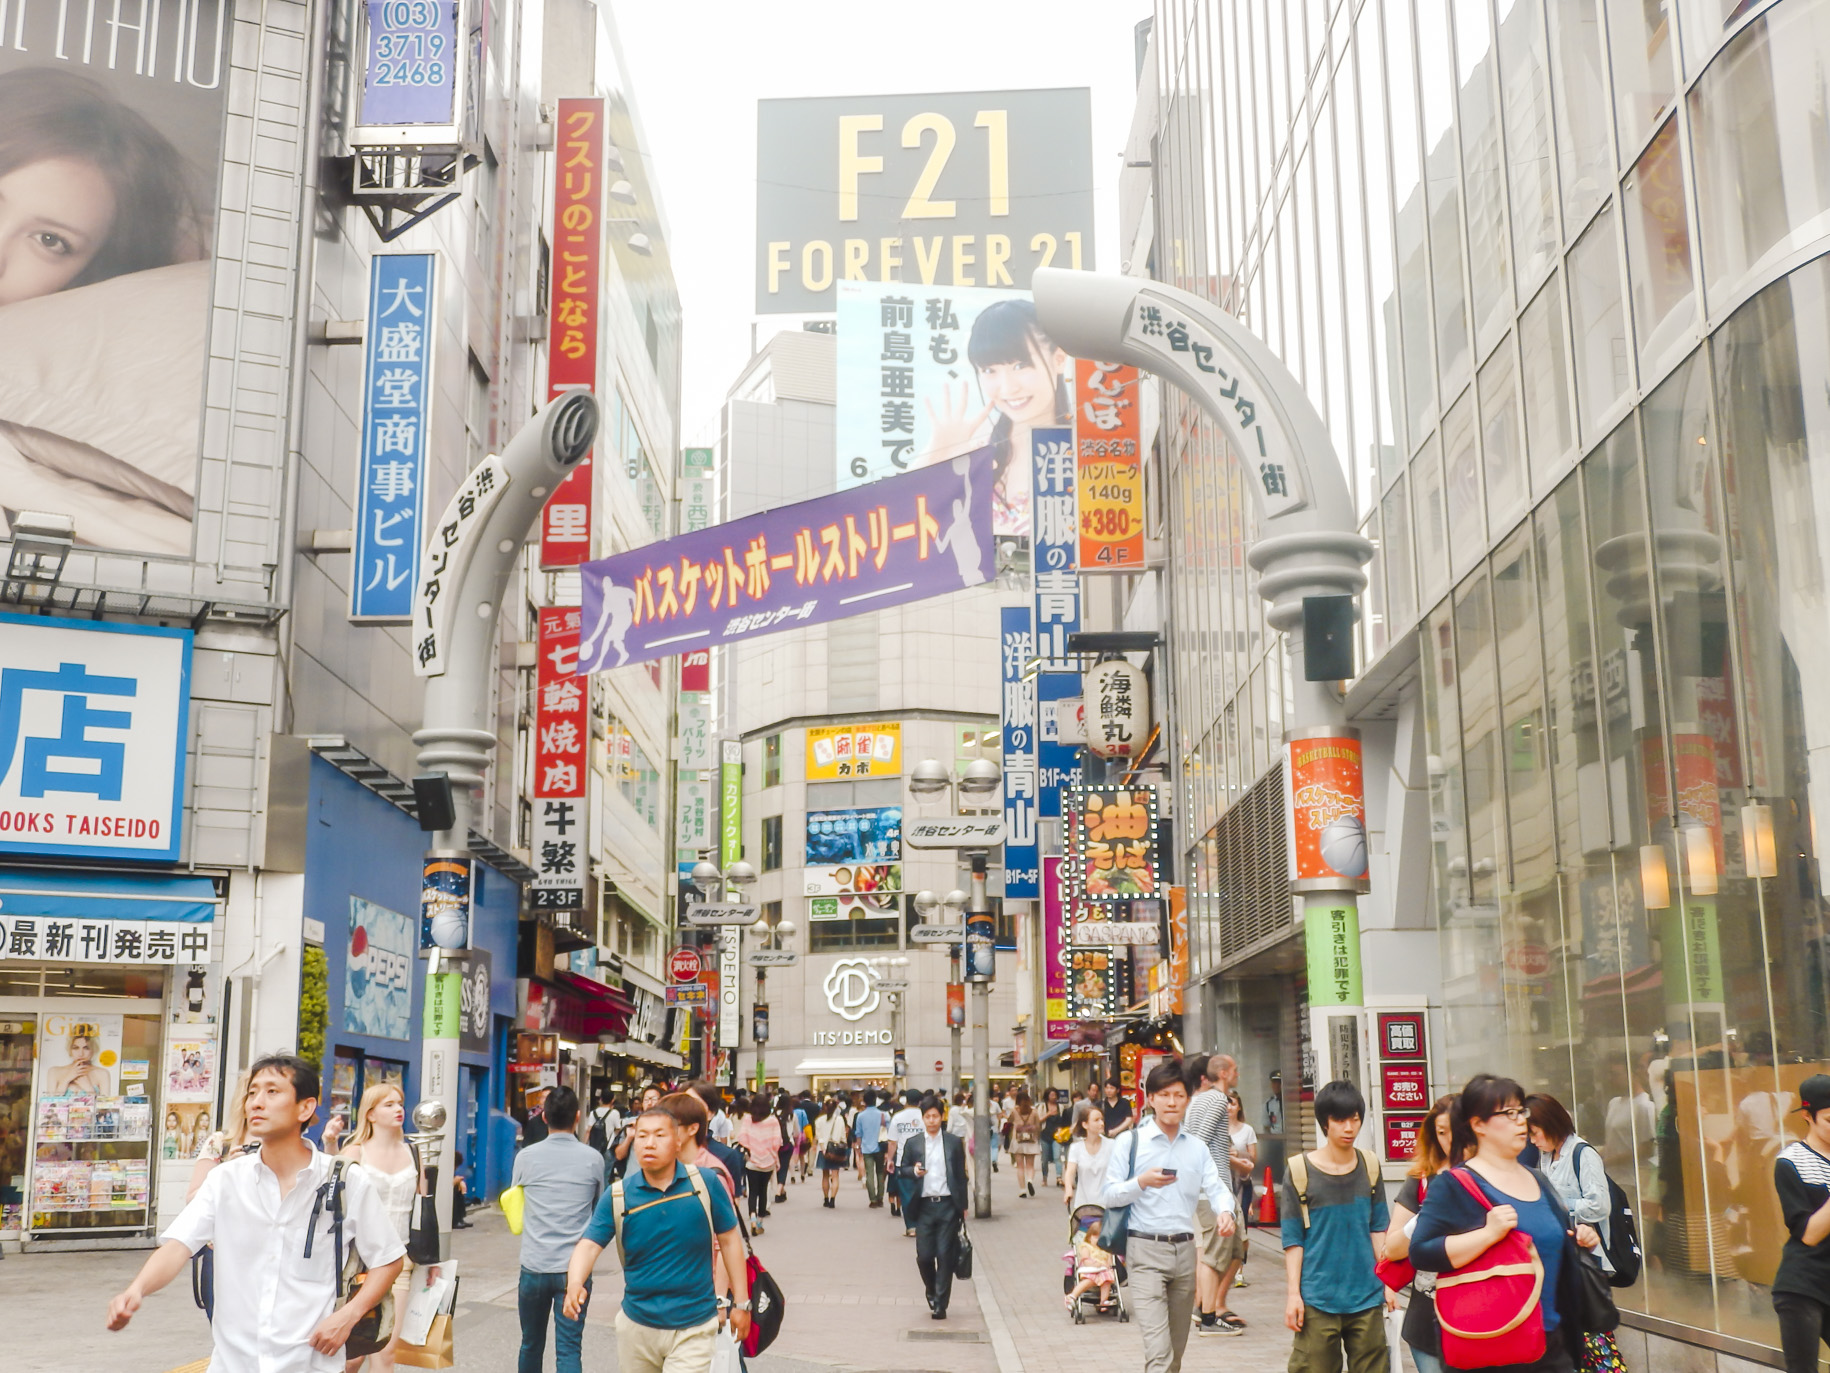 Shibuya in Tokyo, one of the best solo travel destinations in Asia.